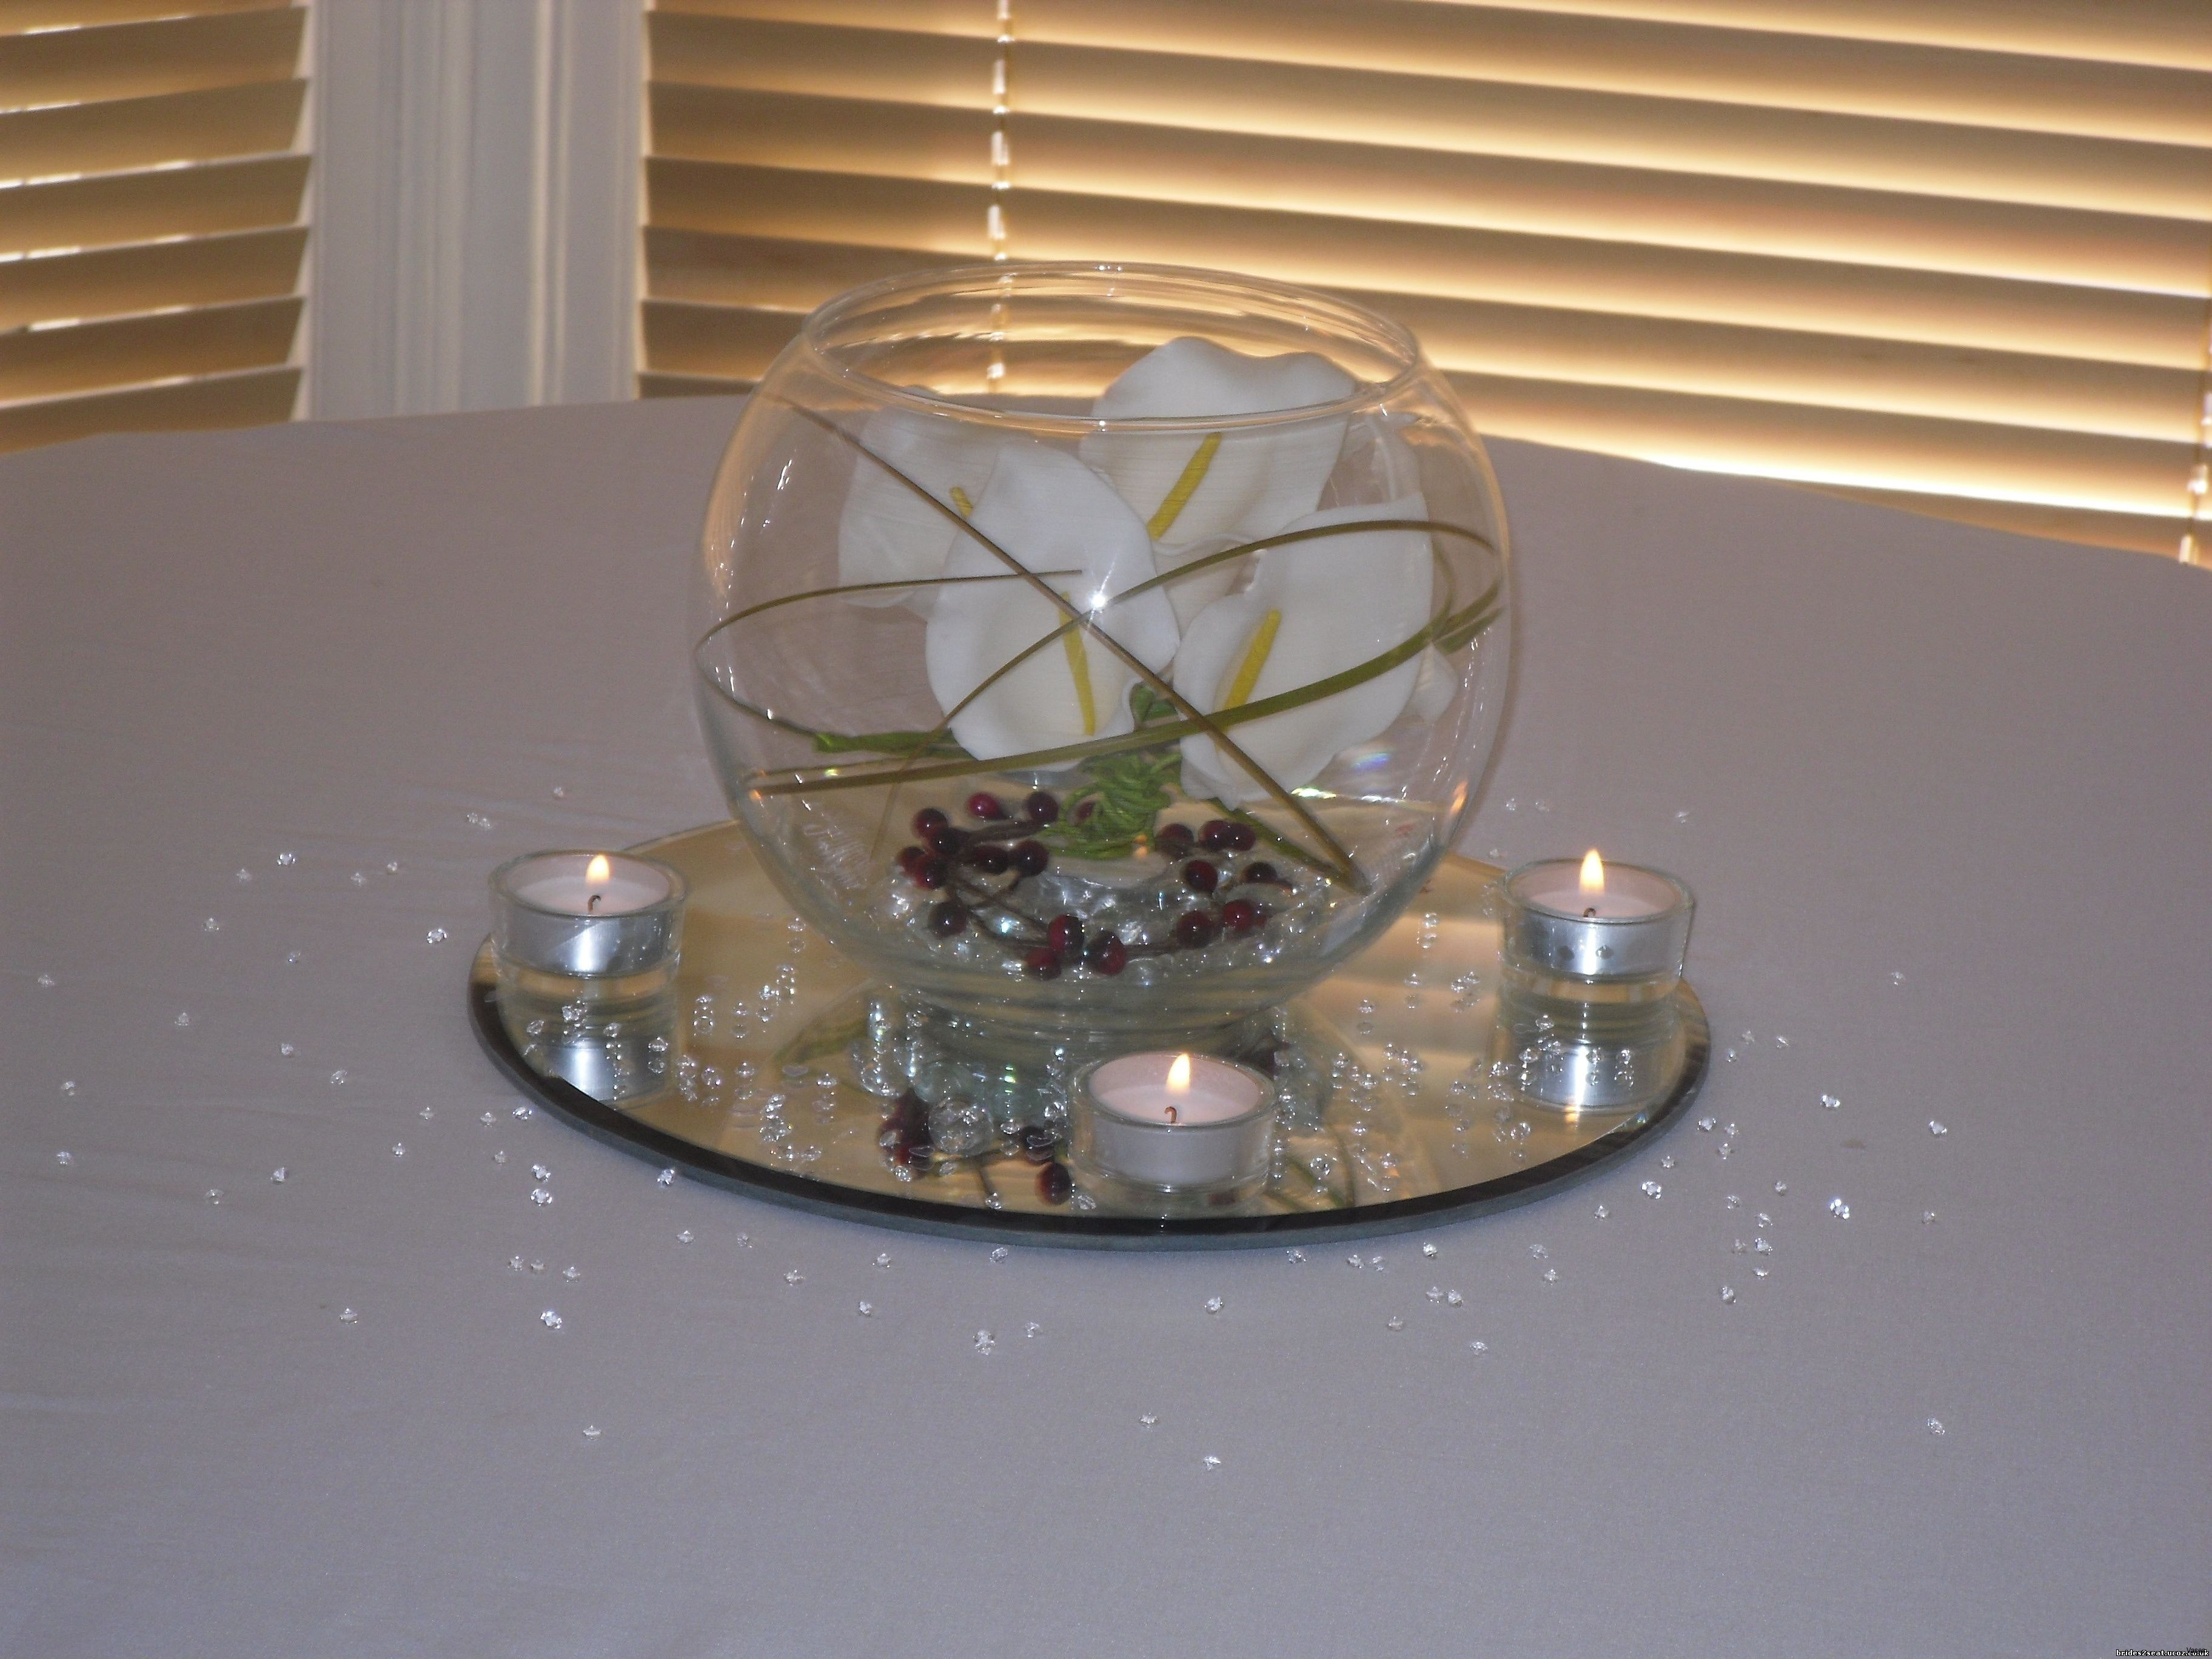 lily shaped vase of fish in vase photos vases fish in vase centerpiece bubble with regarding fish in vase photos vases fish in vase centerpiece bubble with mirrori 0d inspiration